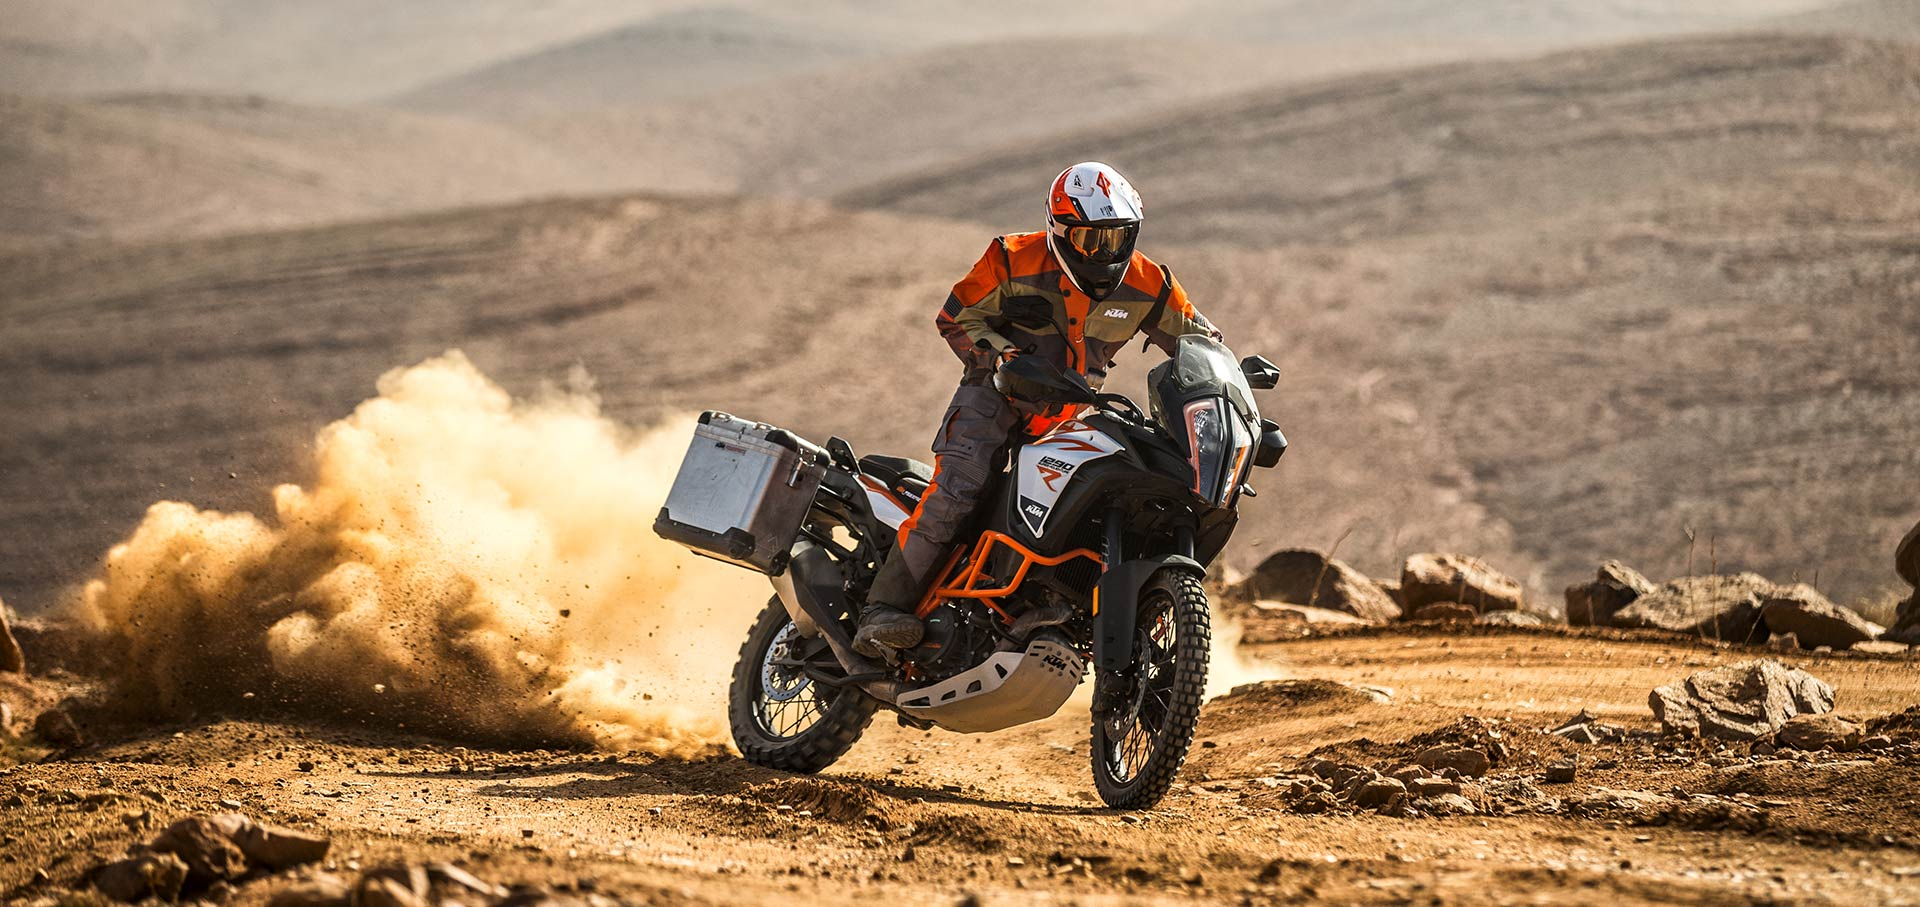 2018 Ktm 1290 Super Adventure R Motorcycle Uae S Prices